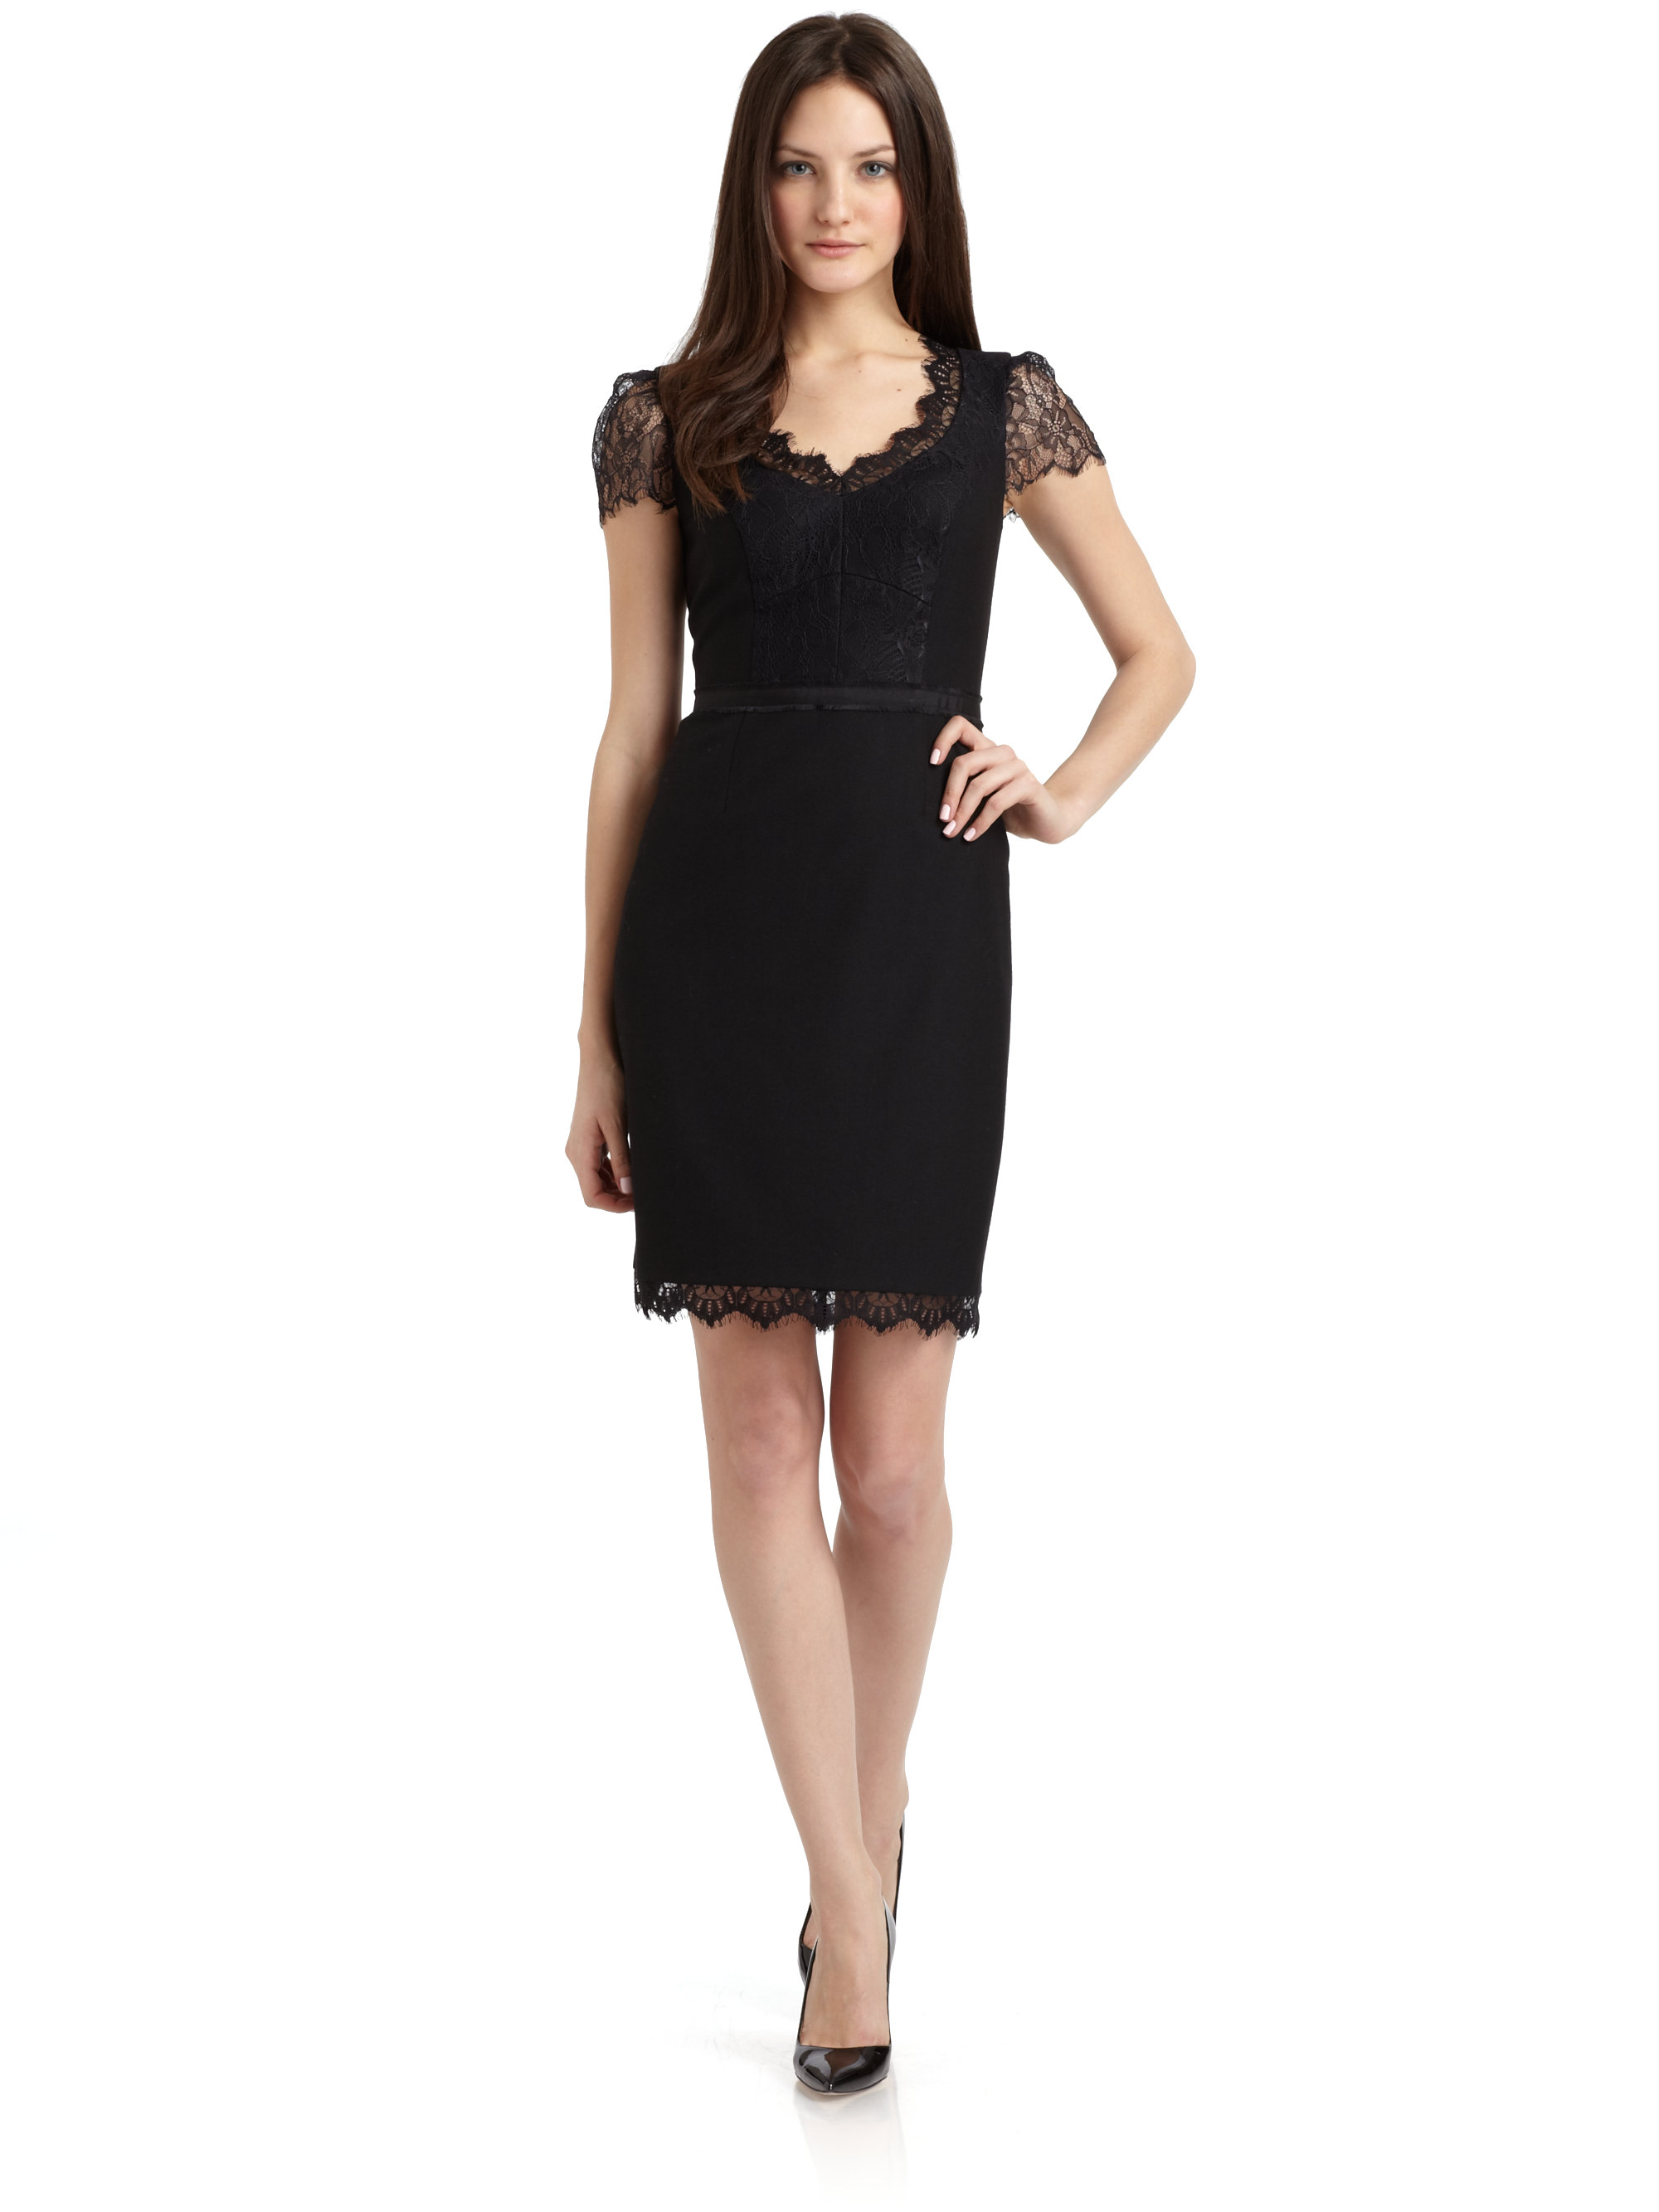 Gallery For > Black Dress With Lace Cap Sleeves